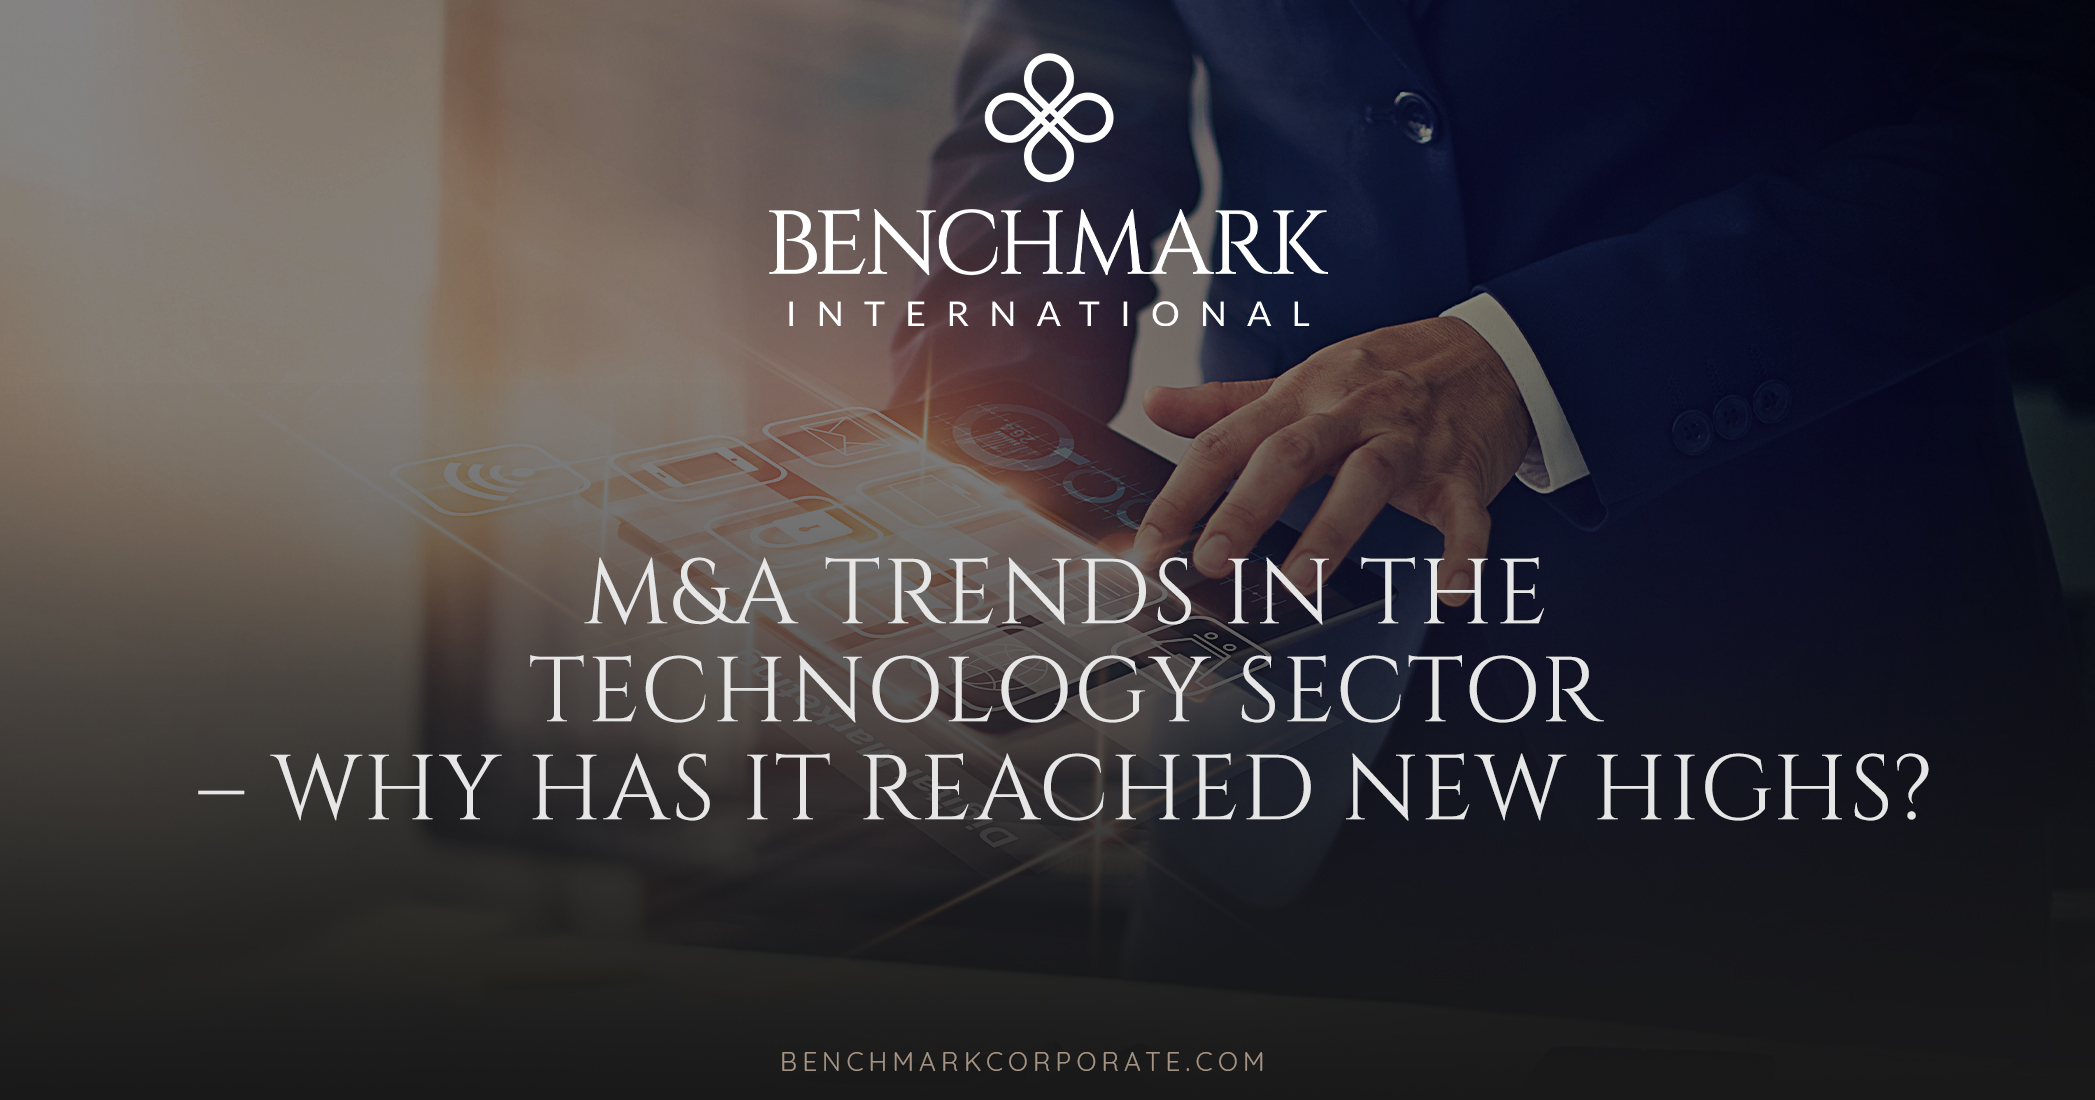 M&A Trends in the Technology Sector – Why has it Reached New Highs?